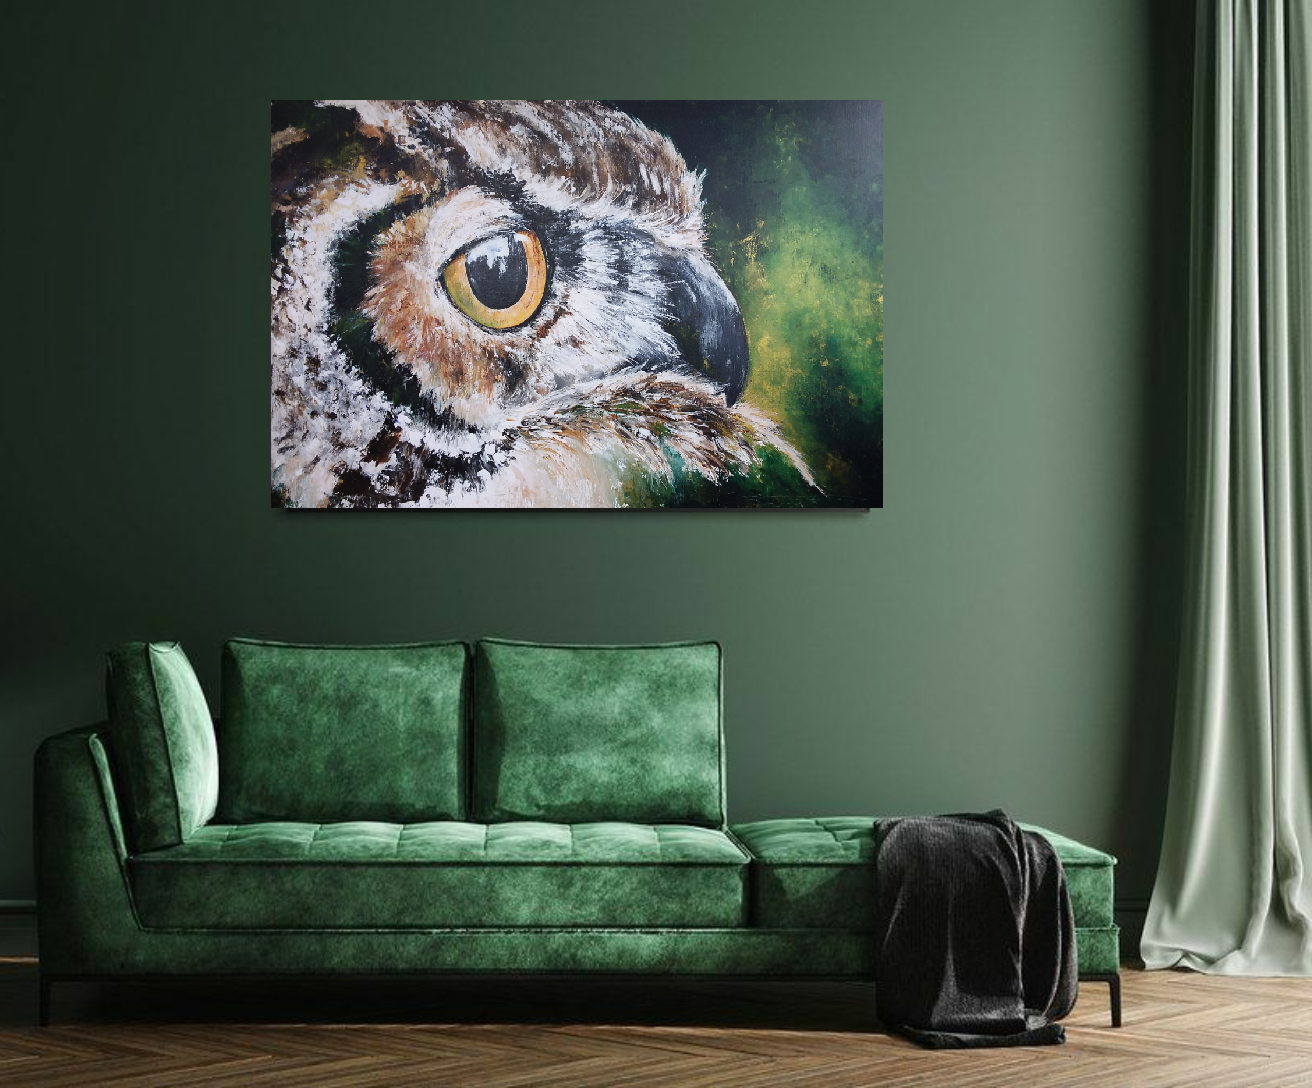 Interior Impression Owl Vission